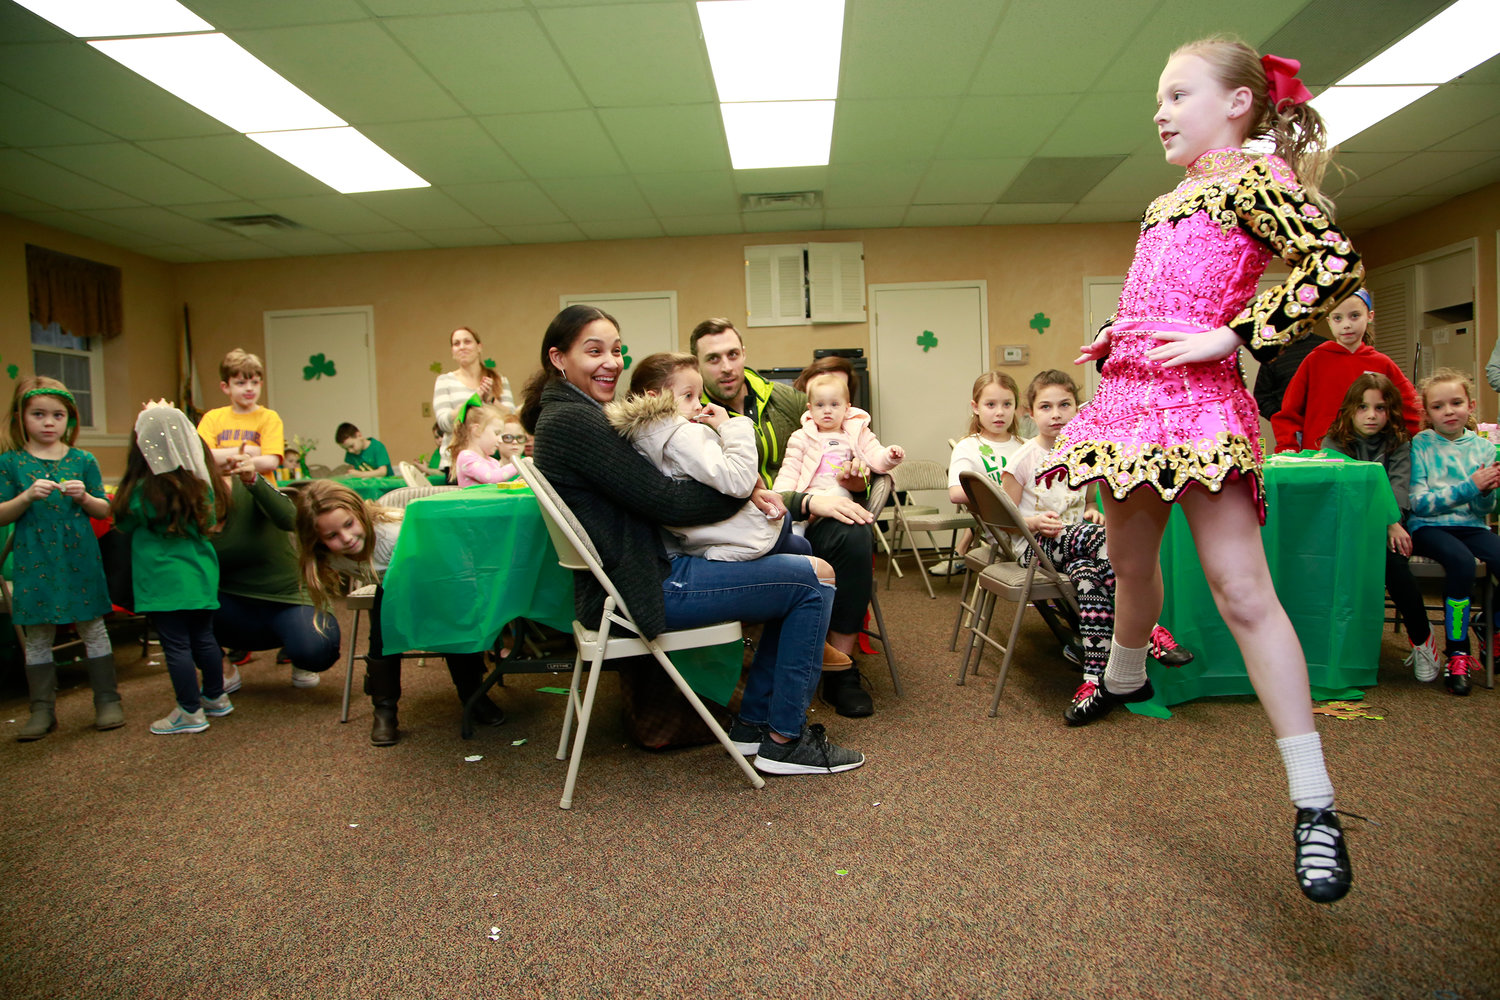 Nine-year-old Maeve Ledwith, a student from the Hagen-Kavanagh School of Irish Dance, performed a traditional step dance at the Malverne Youth Board's St. Patrick's Day Party at Village Hall on March 16.